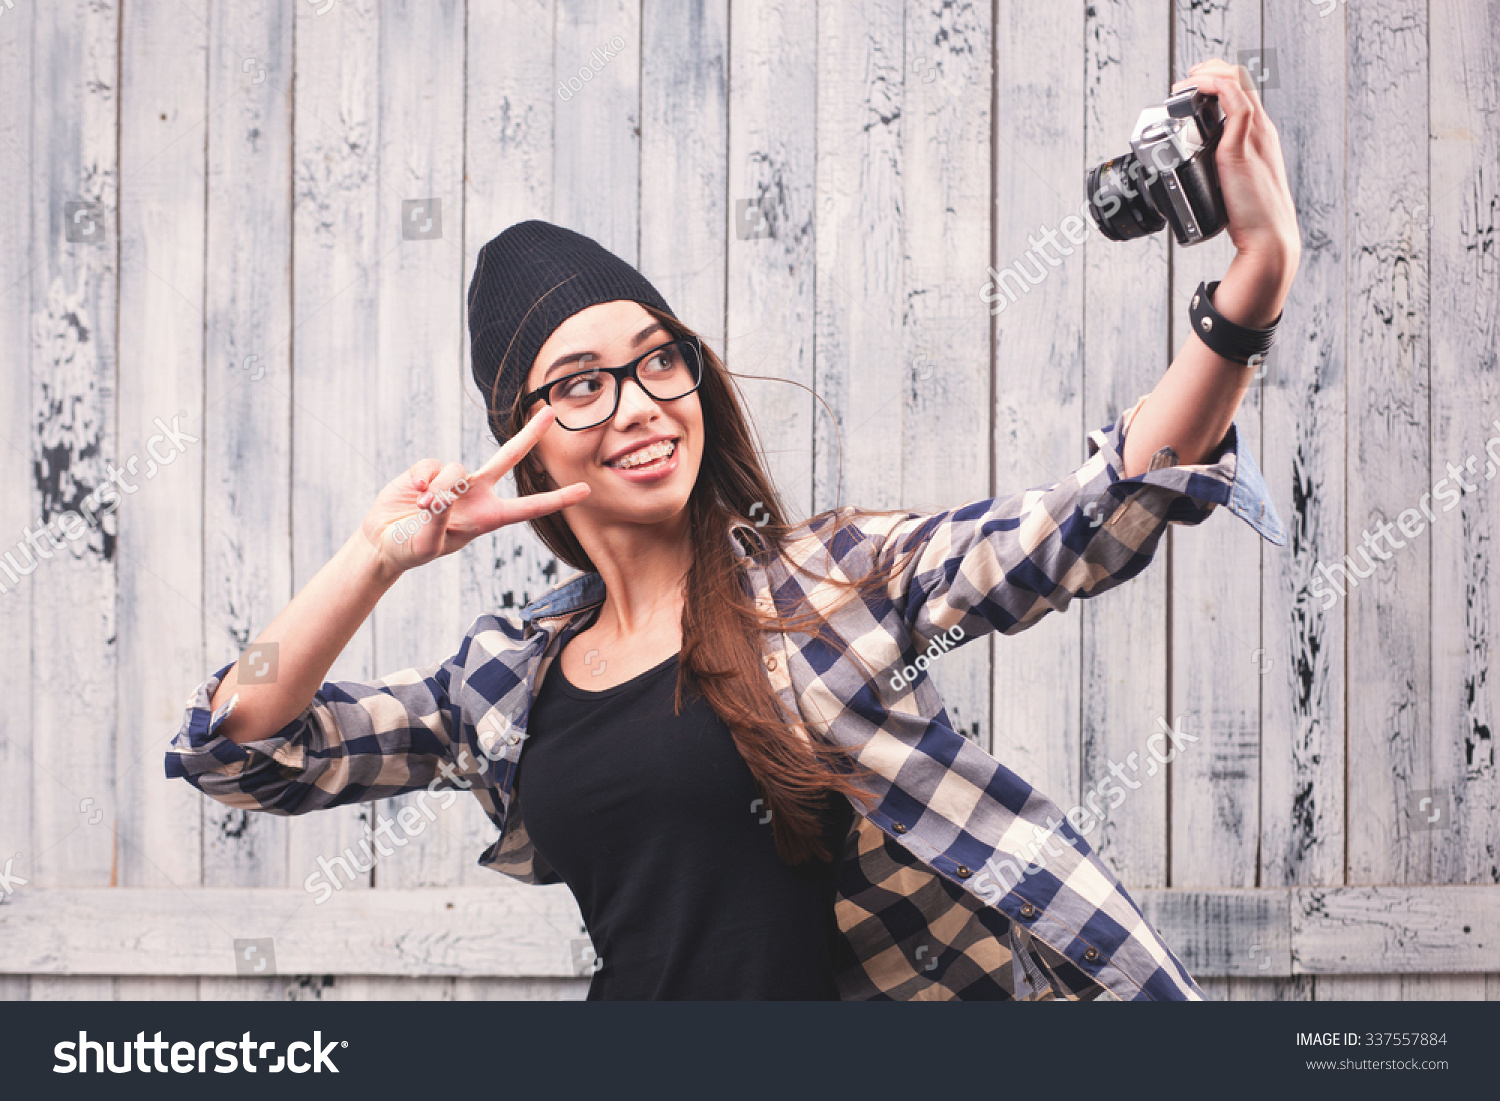 7f2e6d9c62d Hipster girl in glasses and black beanie making selfieshot with vintage  camera on the wooden background